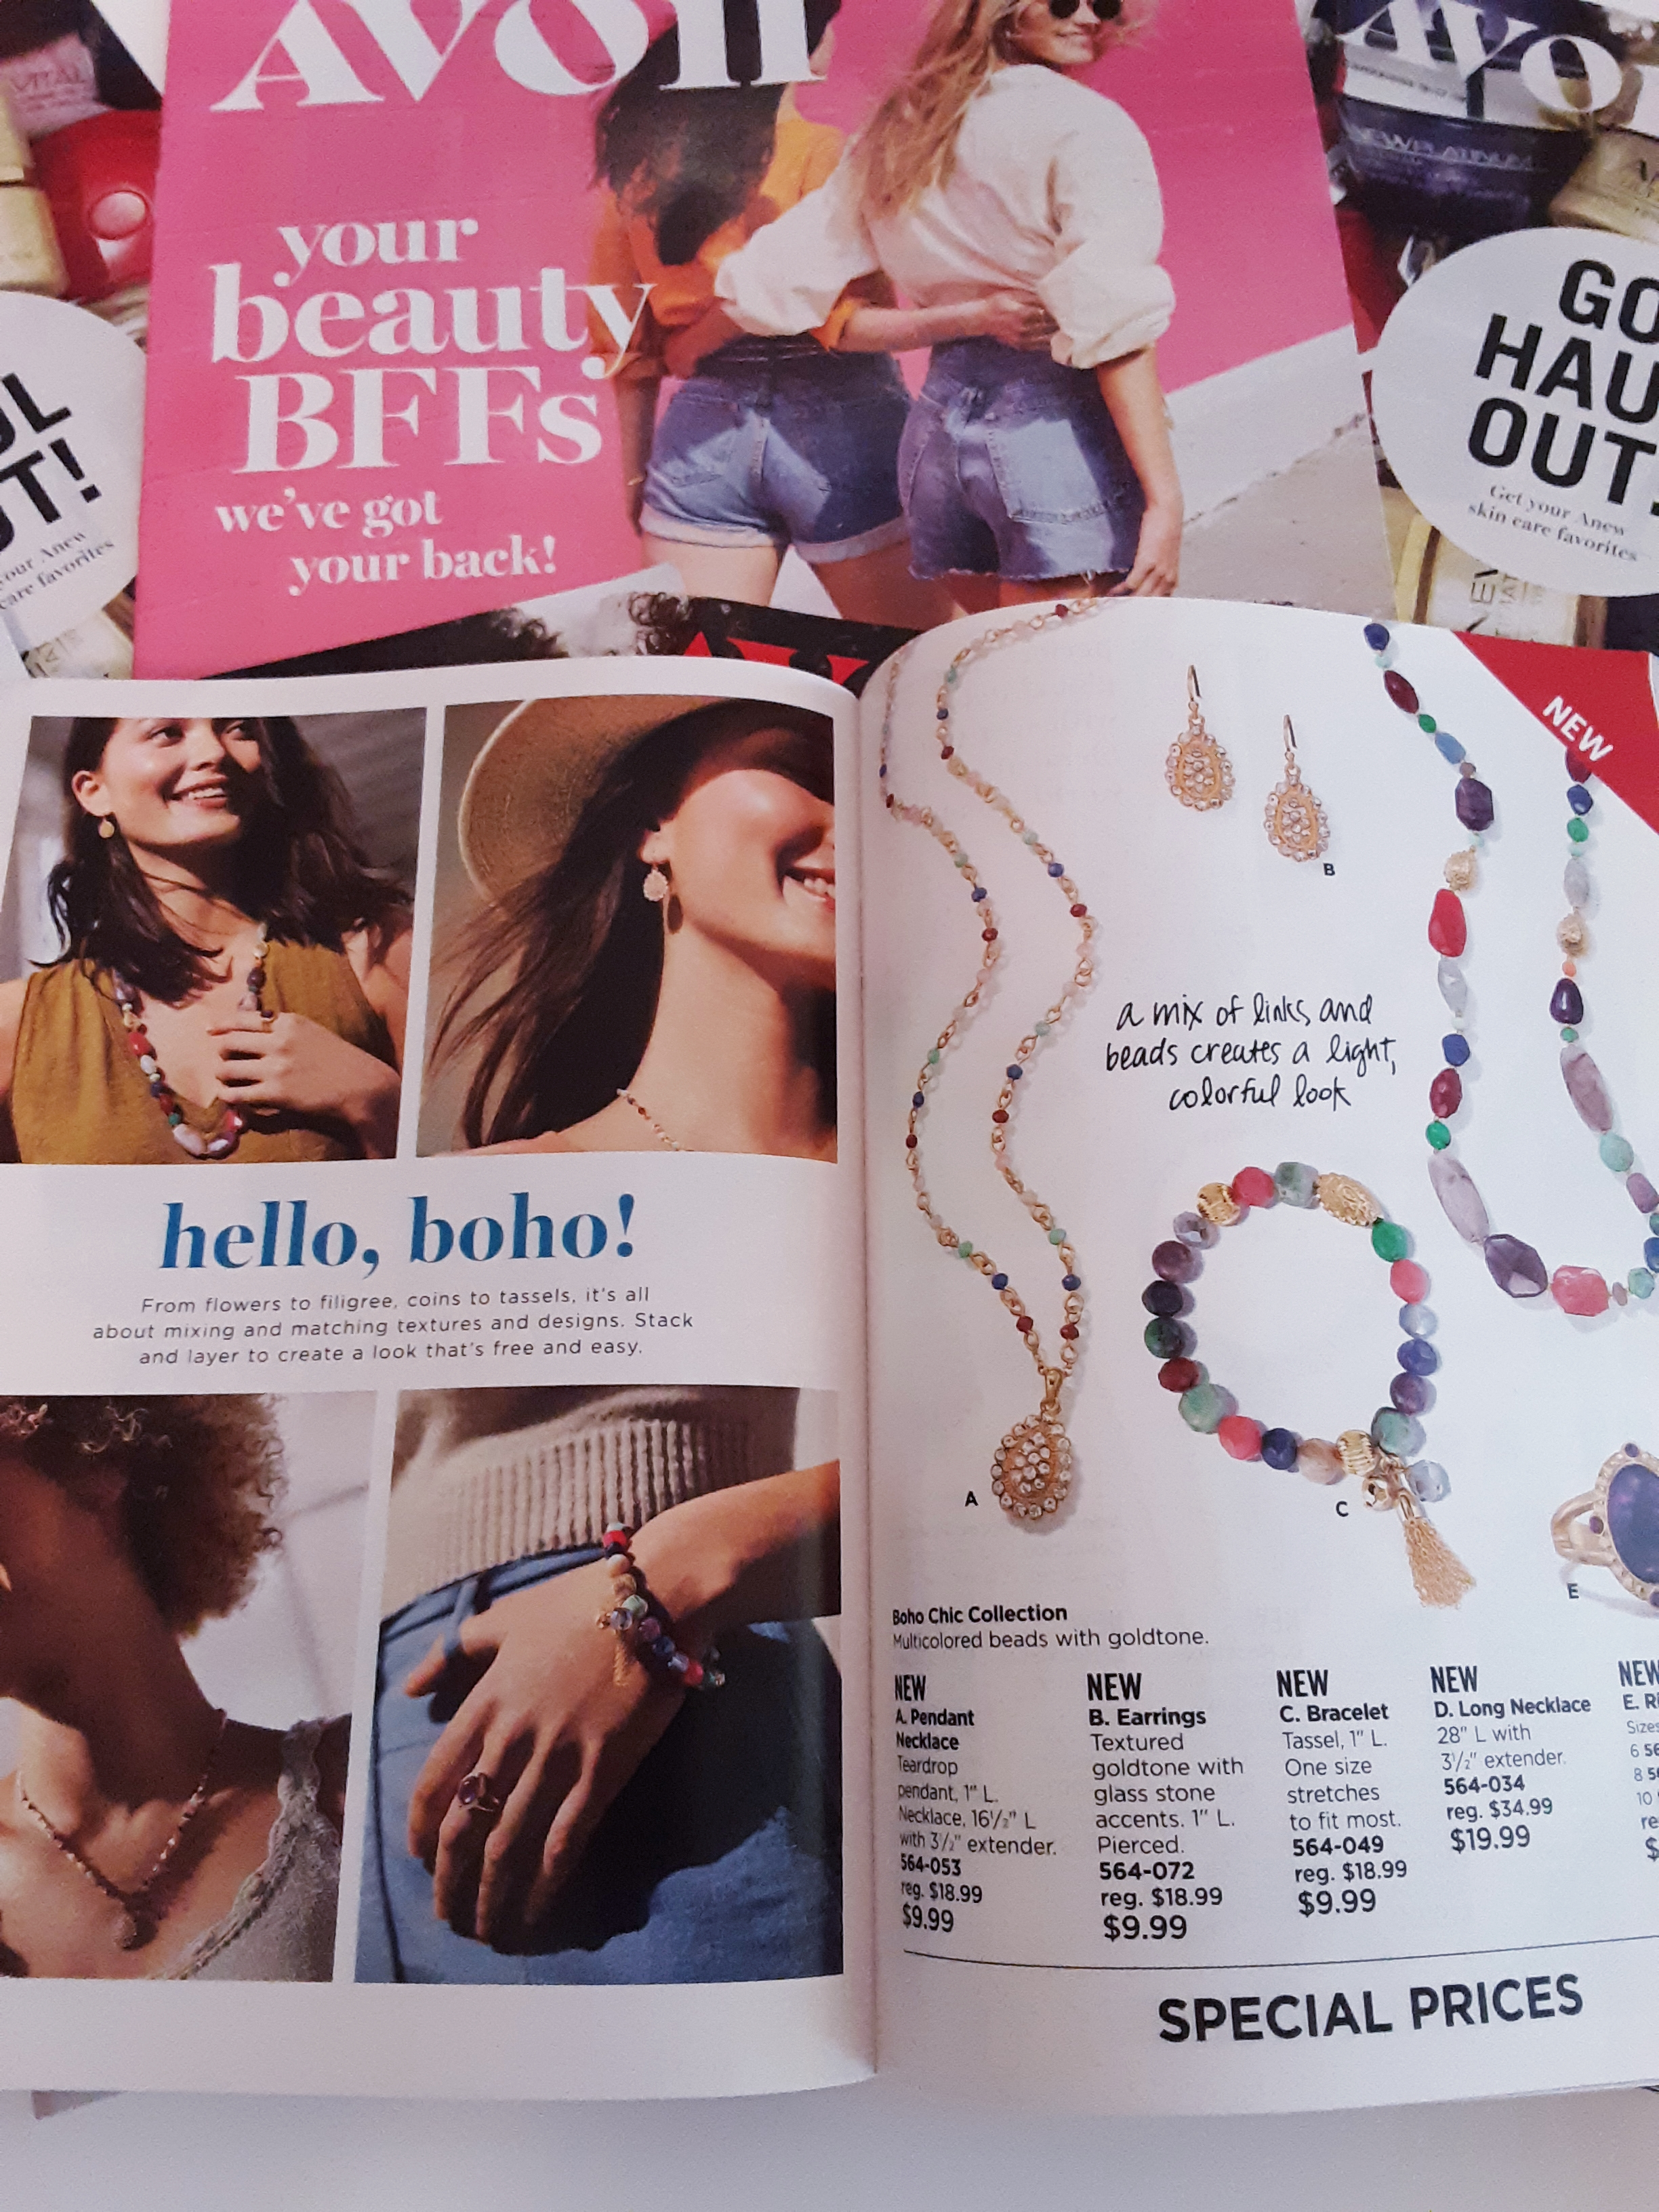 New Boho Fashion Jewelry from Avon